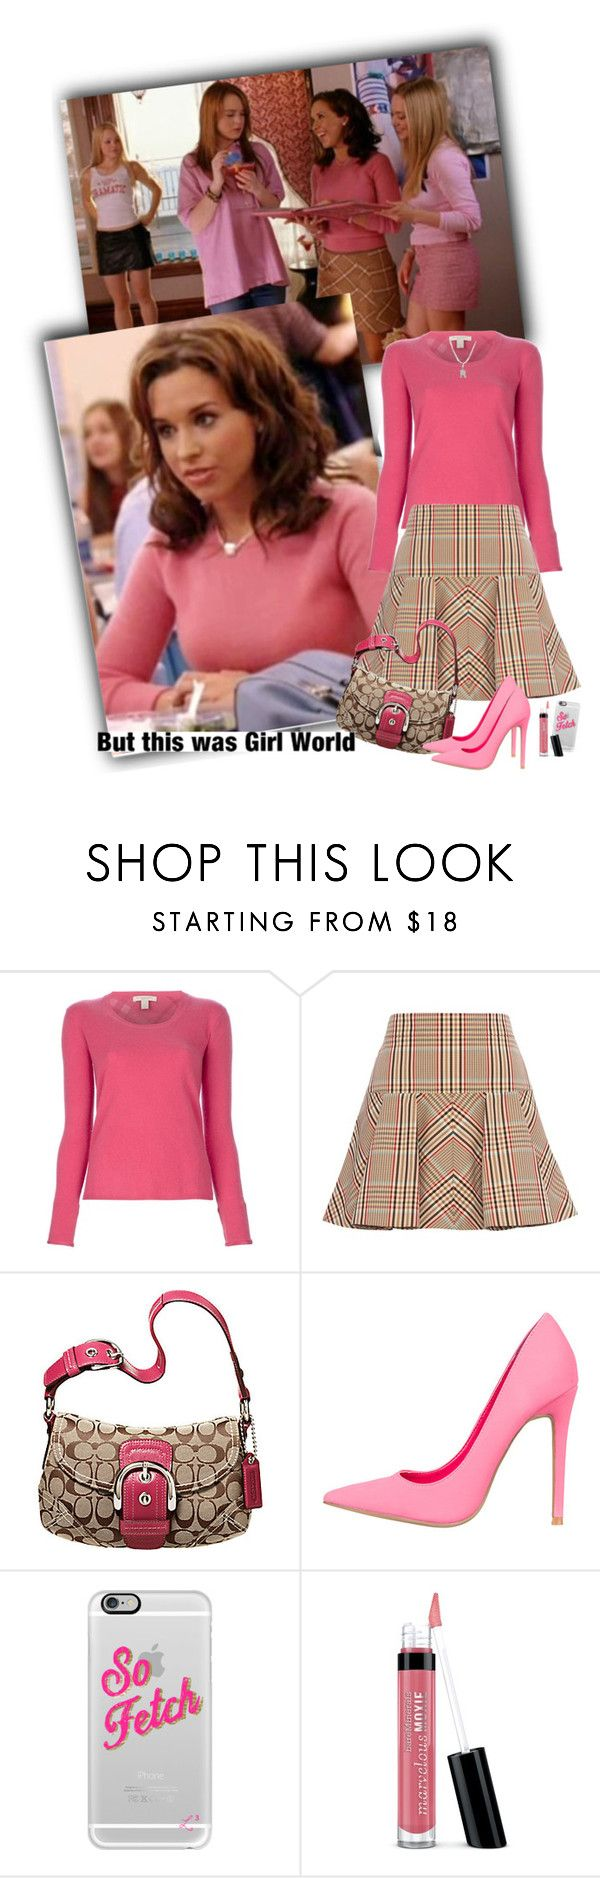 """""""Gretchen Weiners Mean Girls"""" by priscilla12 ❤ liked on Polyvore featuring Burberry, Coach, Casetify, Bare Escentuals, movie, meangirls, sofetch, YouGoGlennCoCo and gretchenweiners"""